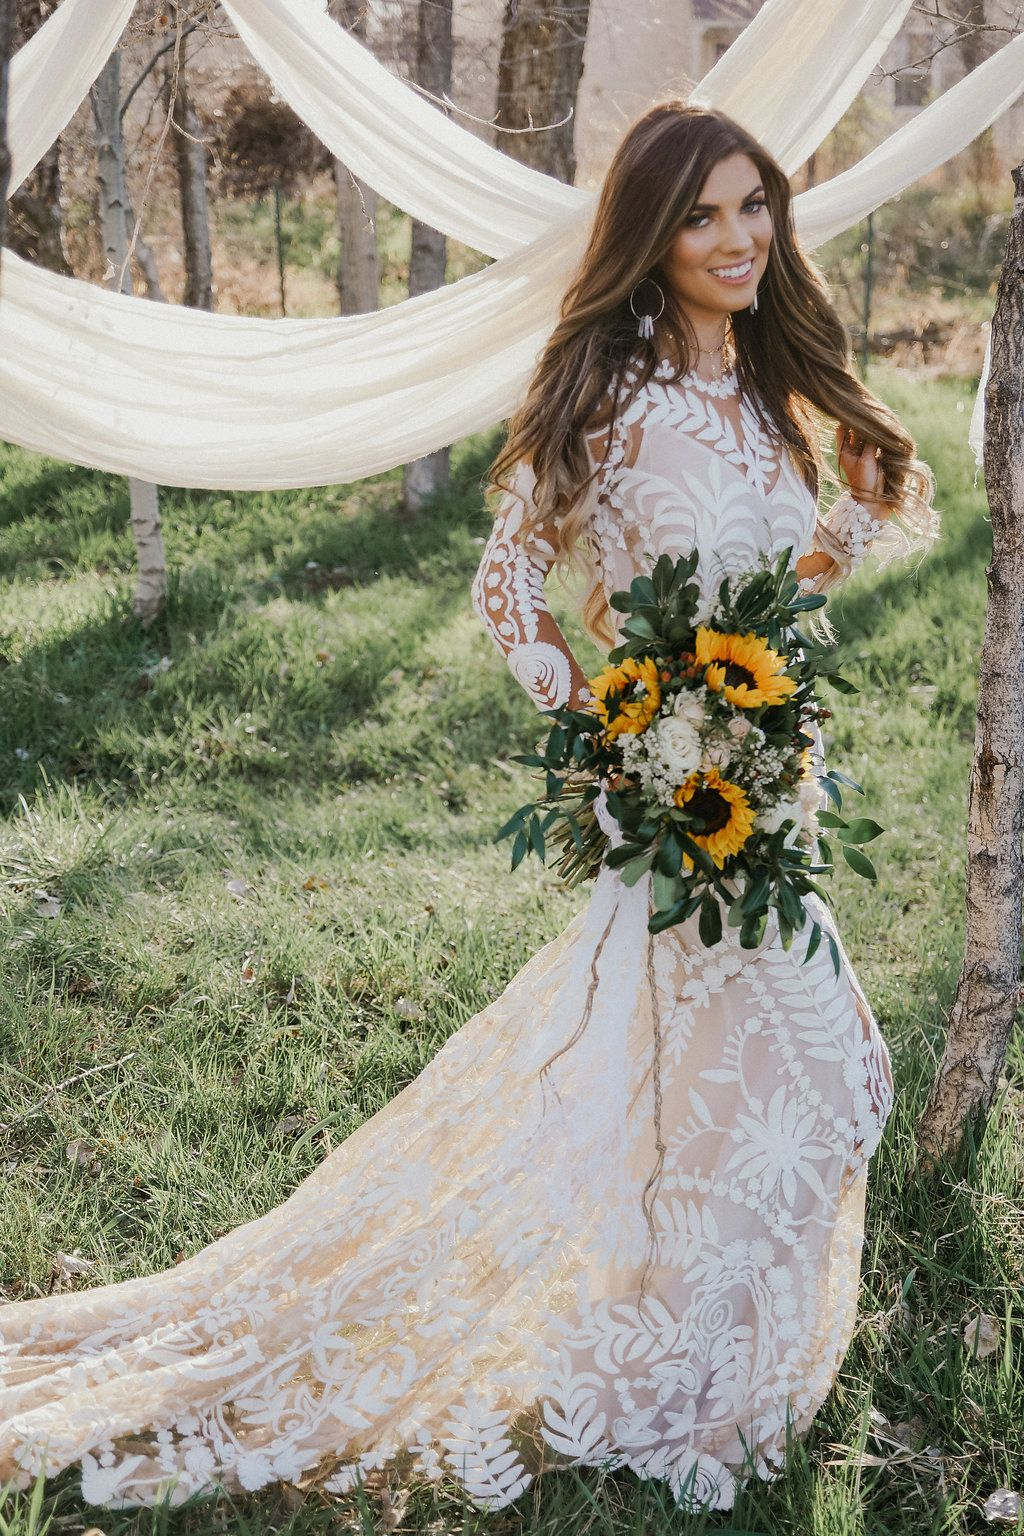 Large Sunflower Bouquet Second Hand Wedding Dresses Sunflower